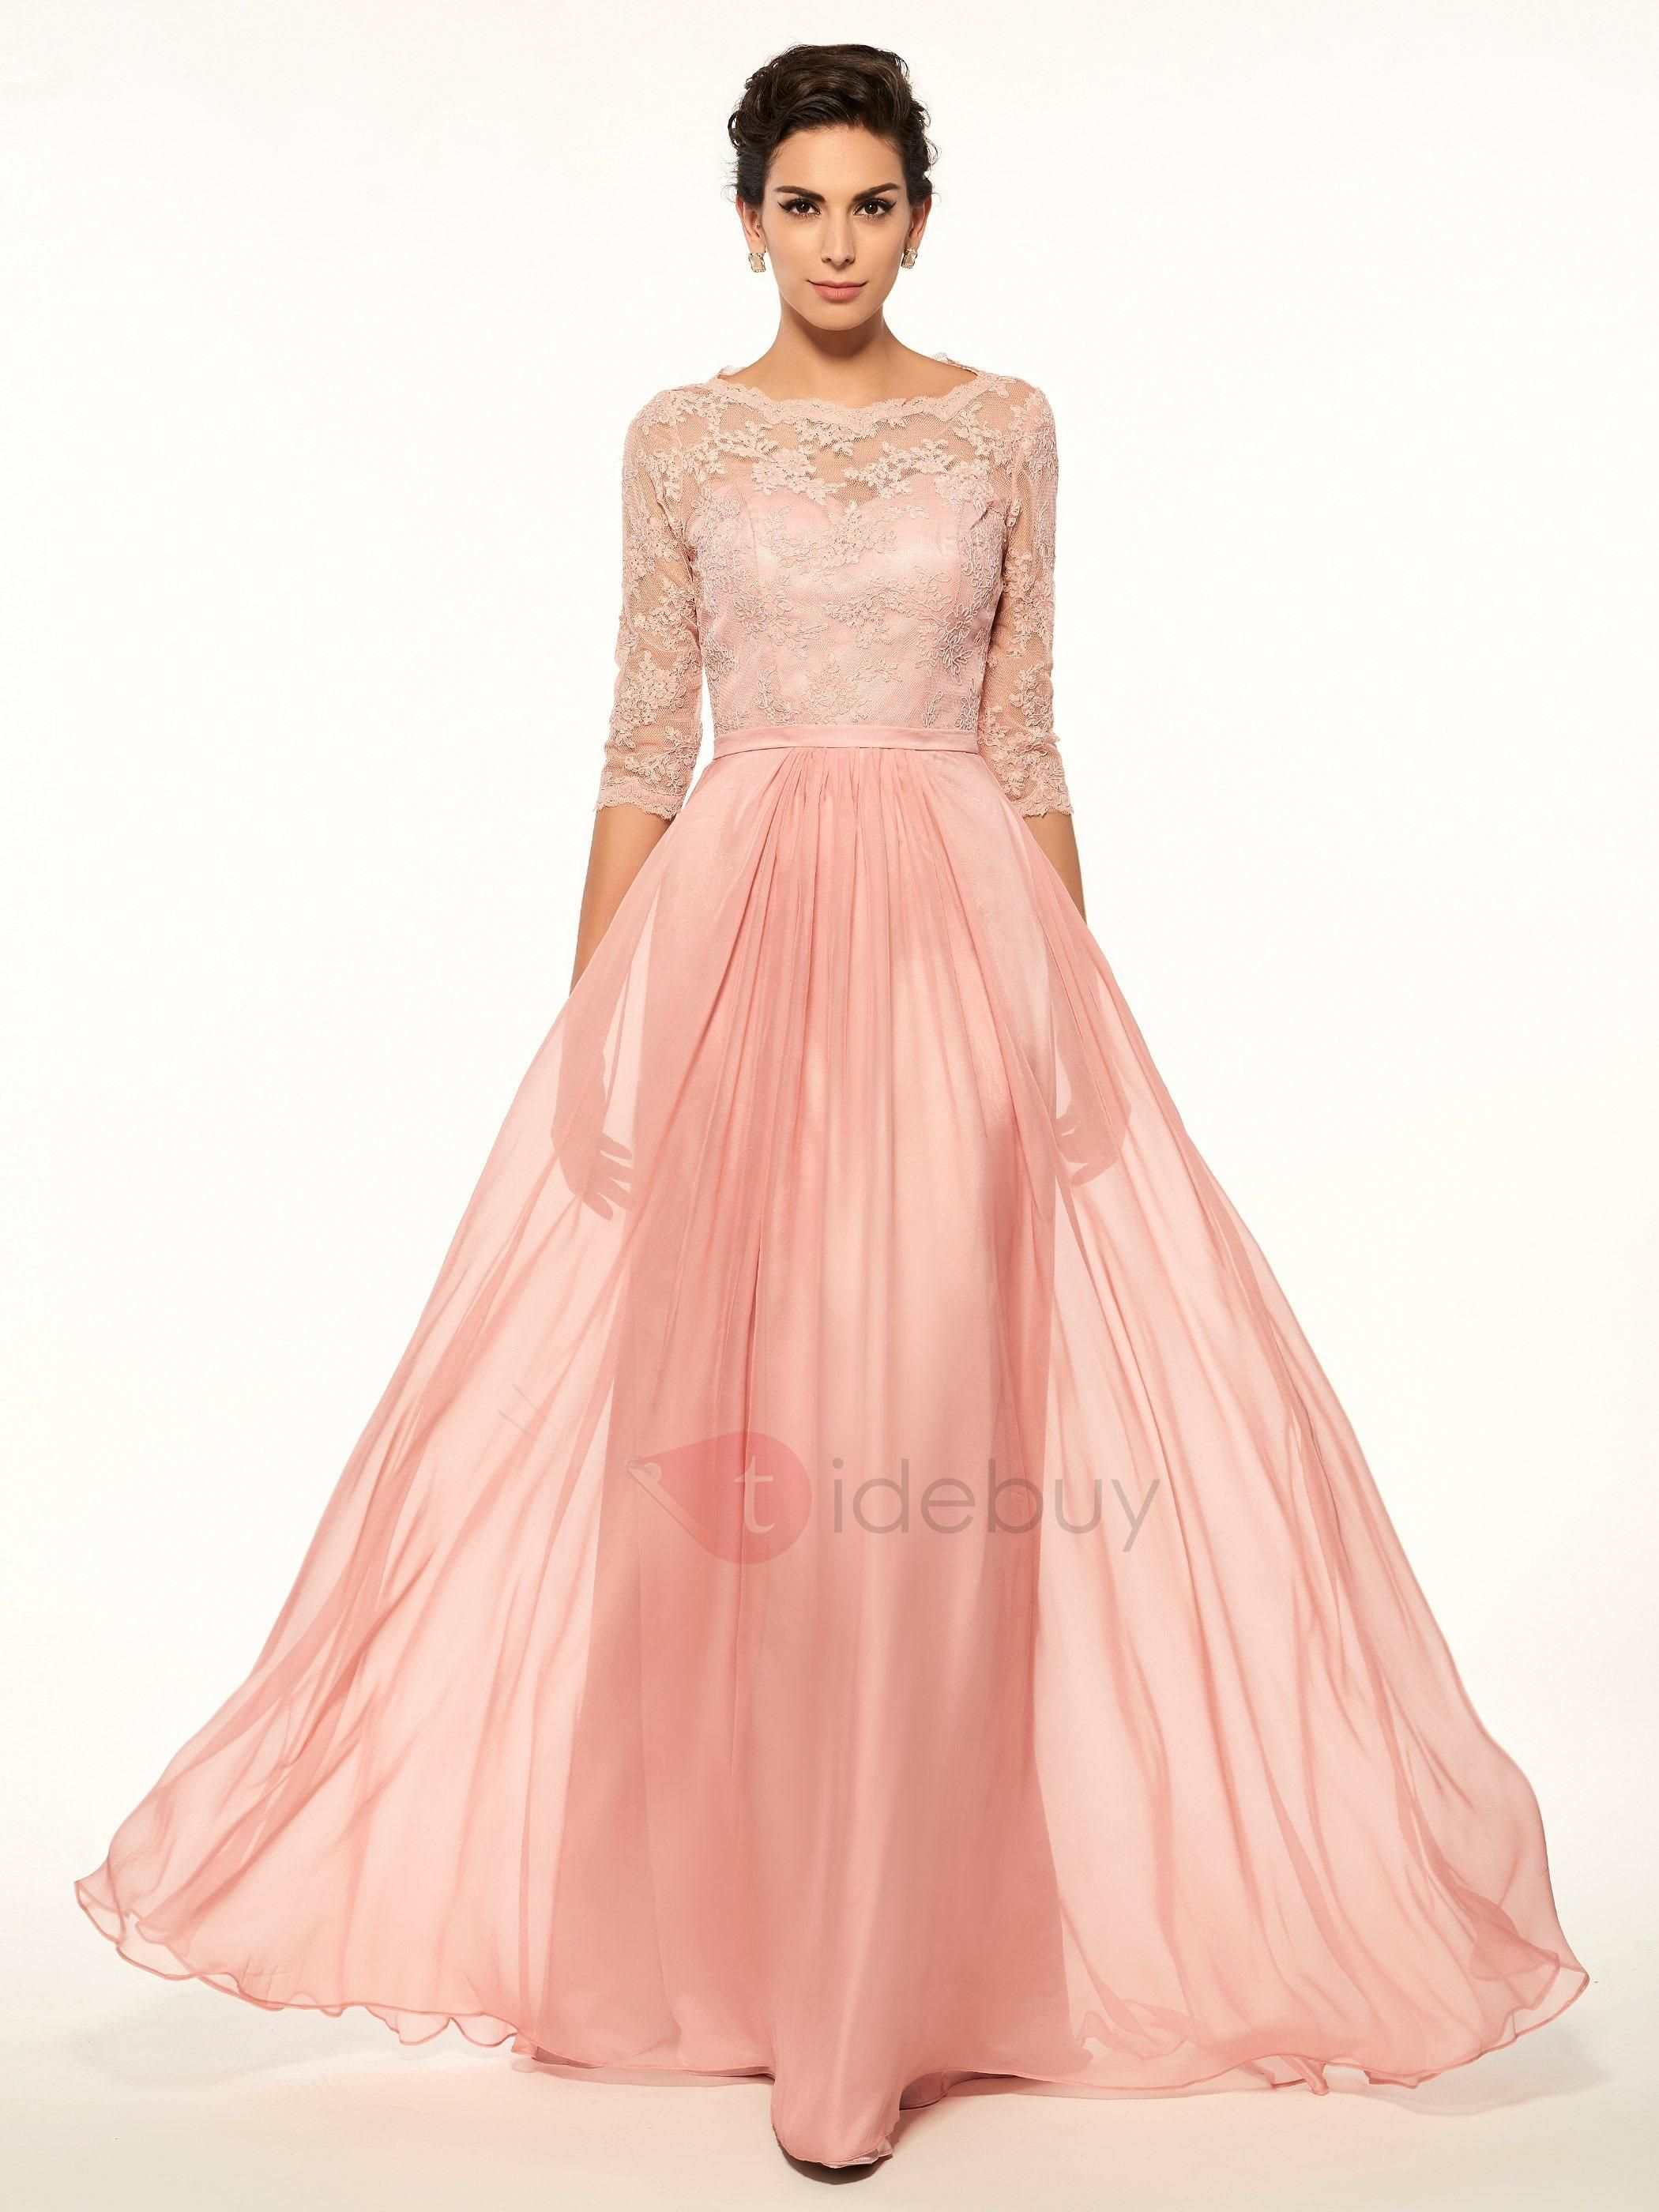 Tidebuy Mother of Bride Dresses